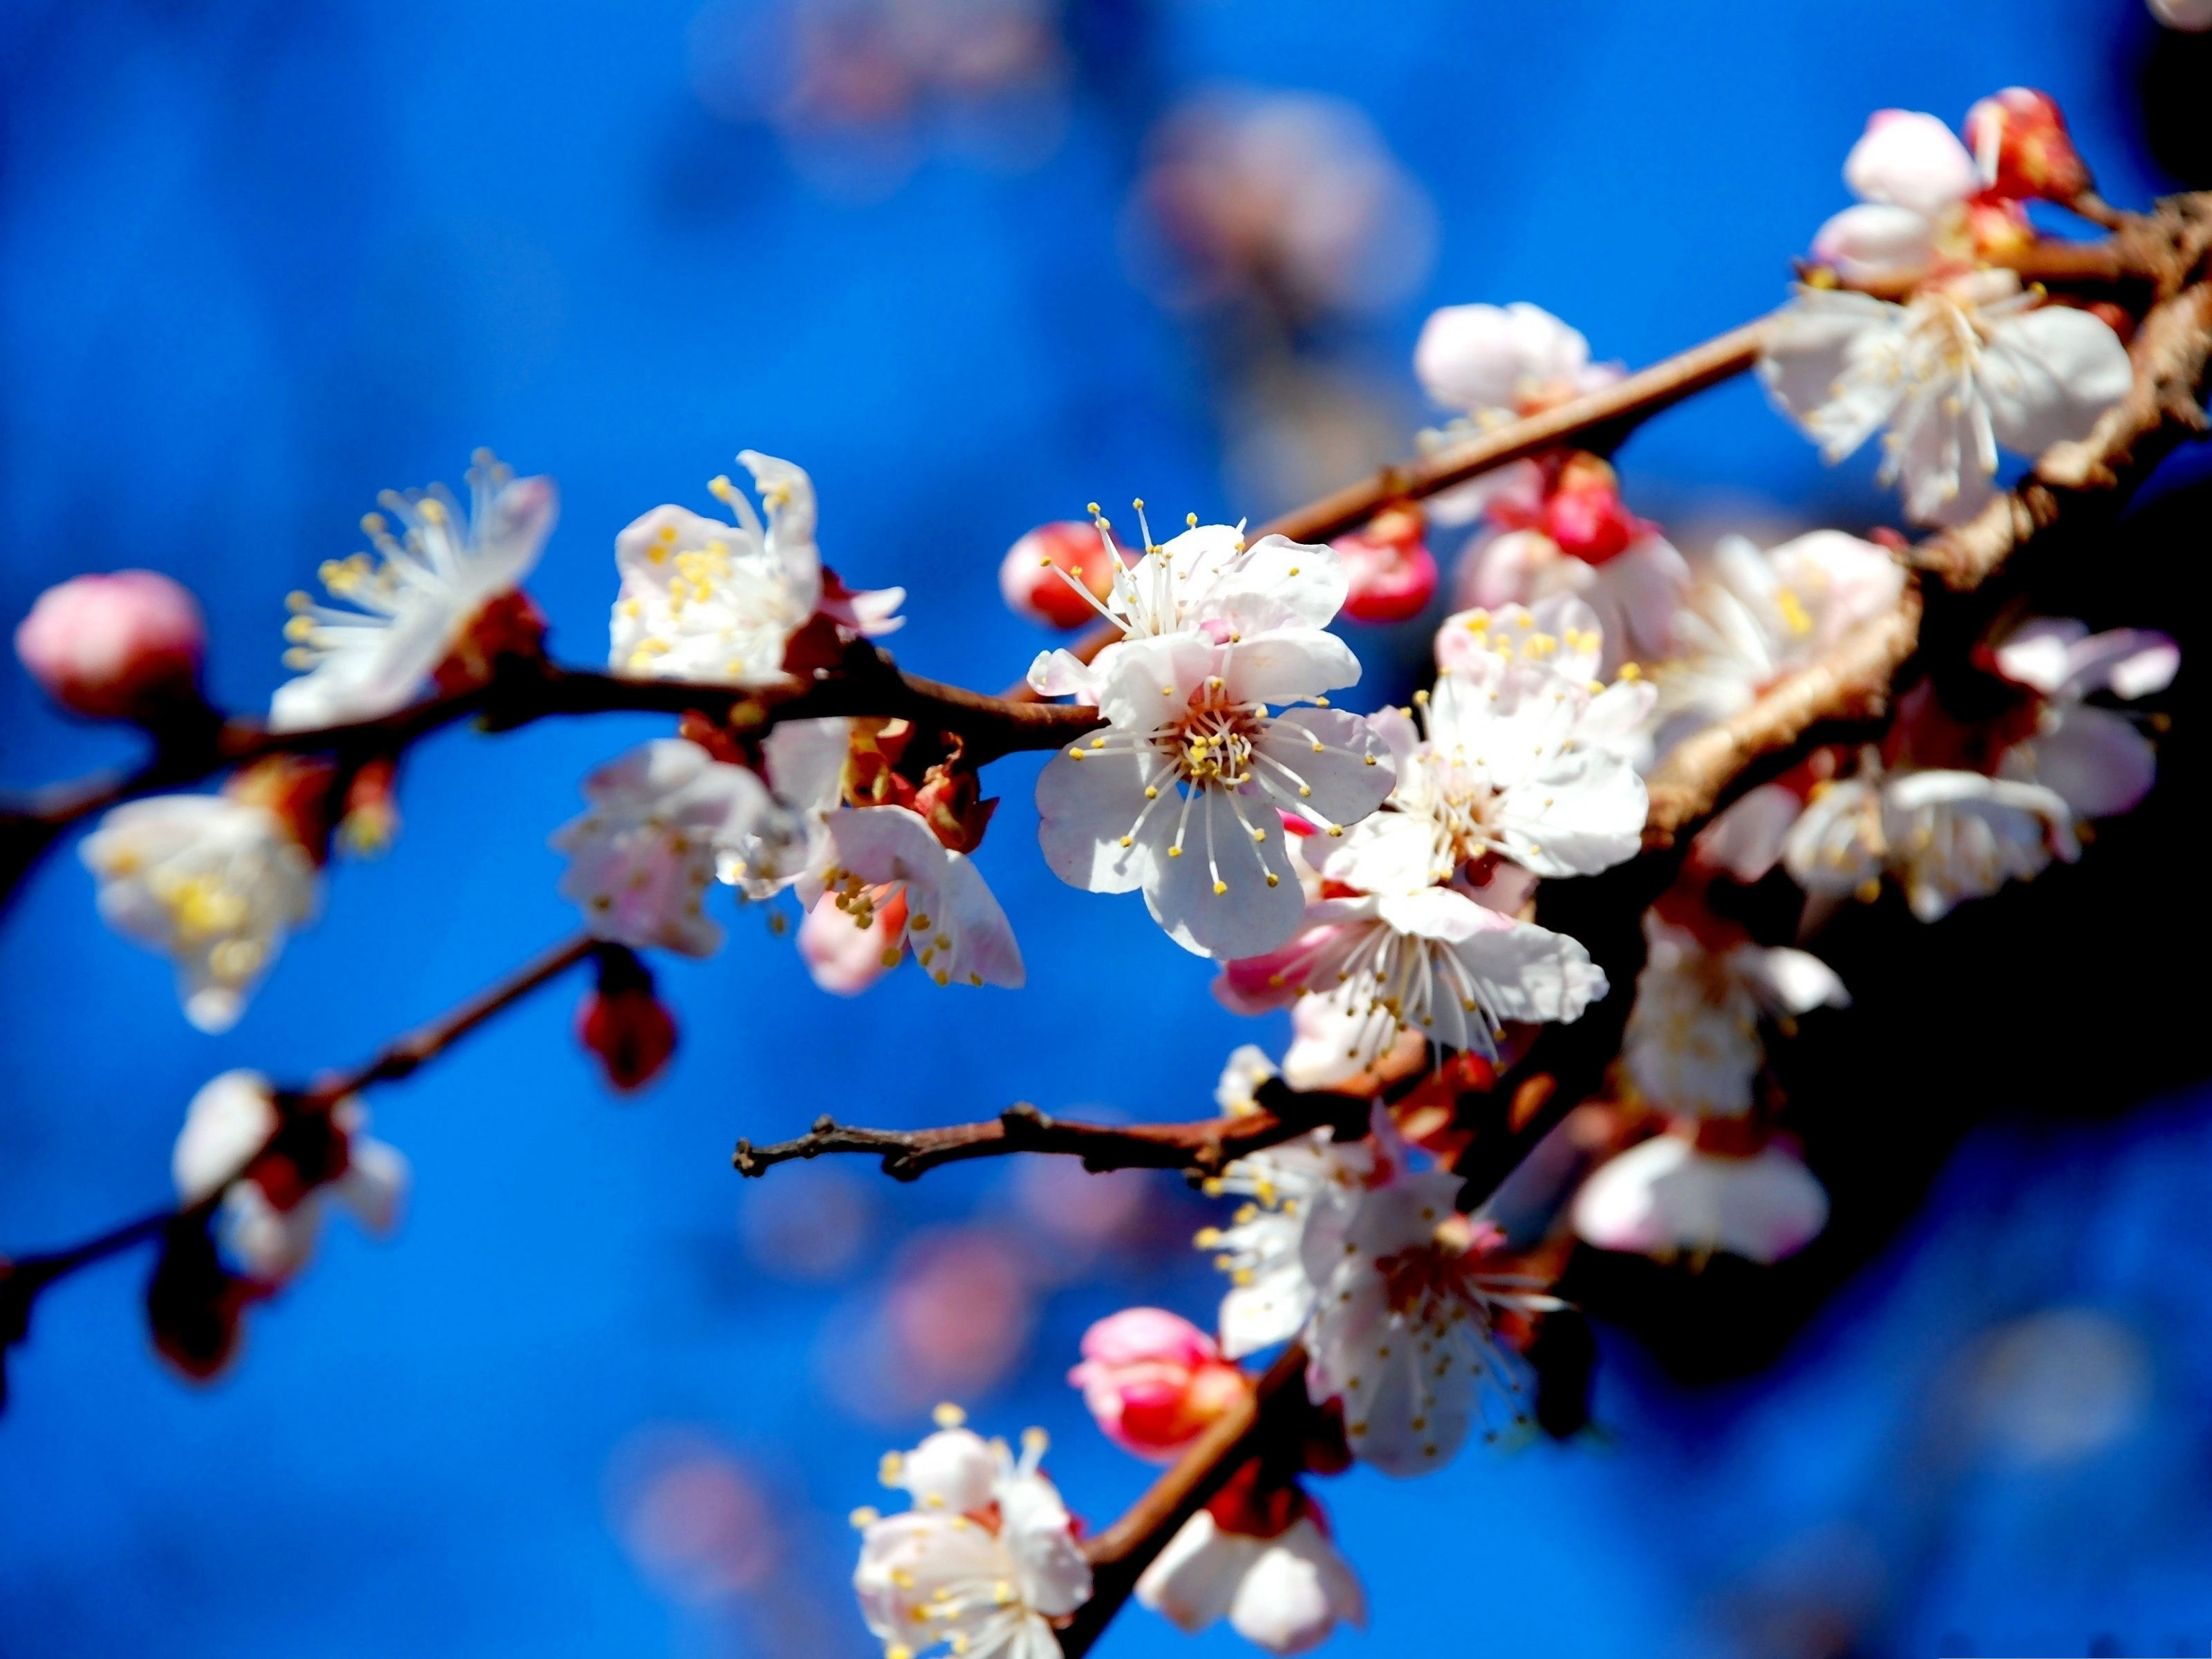 click to free download the wallpaper--Image of Apricot Flowers, White Tiny Flowers on Thin Branch, the Blue Sky as Setting 3200X2400 free wallpaper download